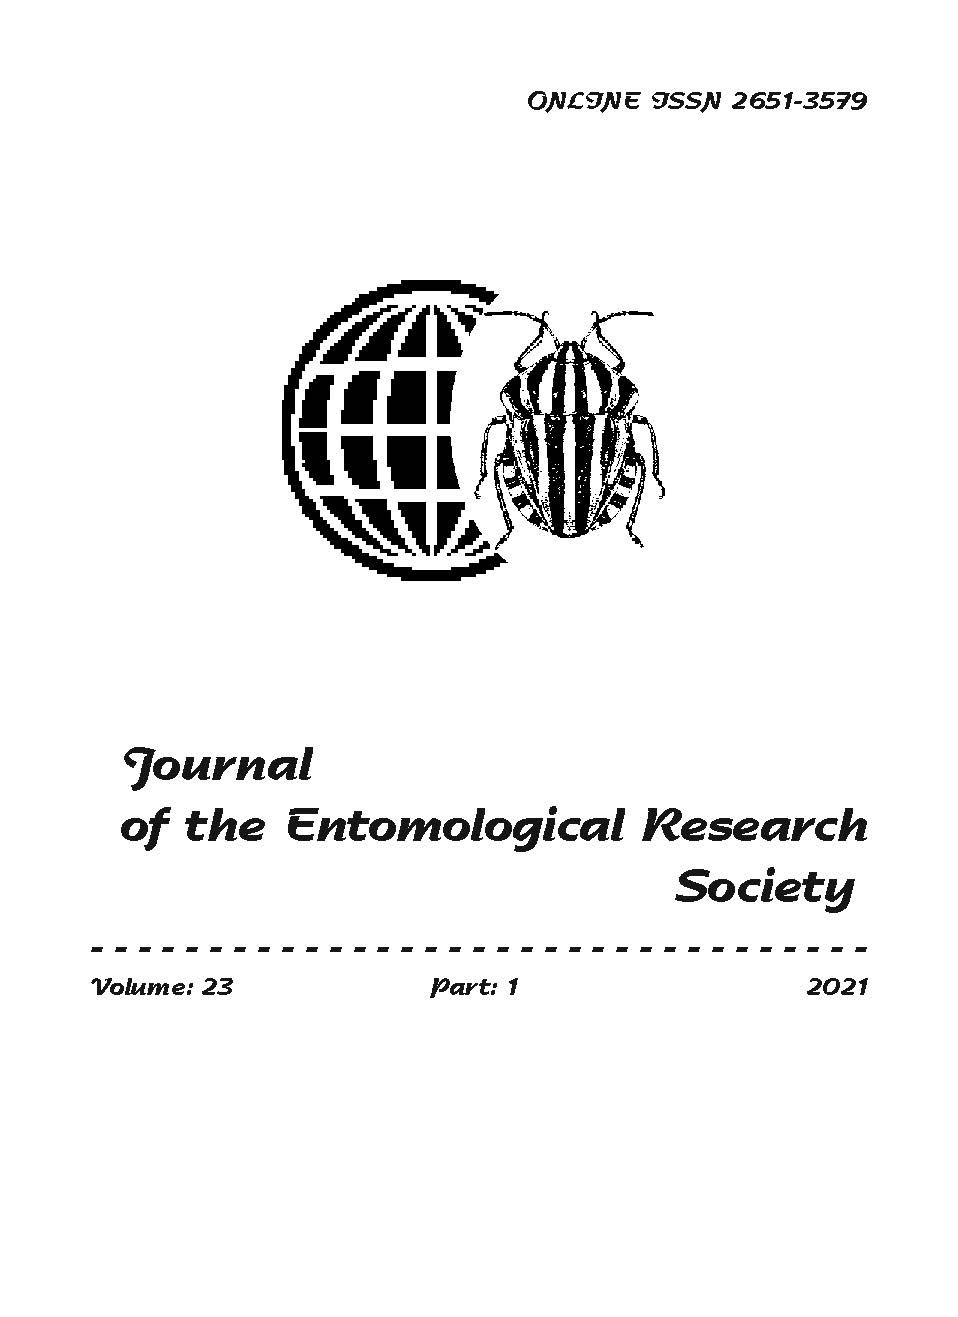 View Vol. 23 No. 1 (2021): Journal of the Entomological Research Society